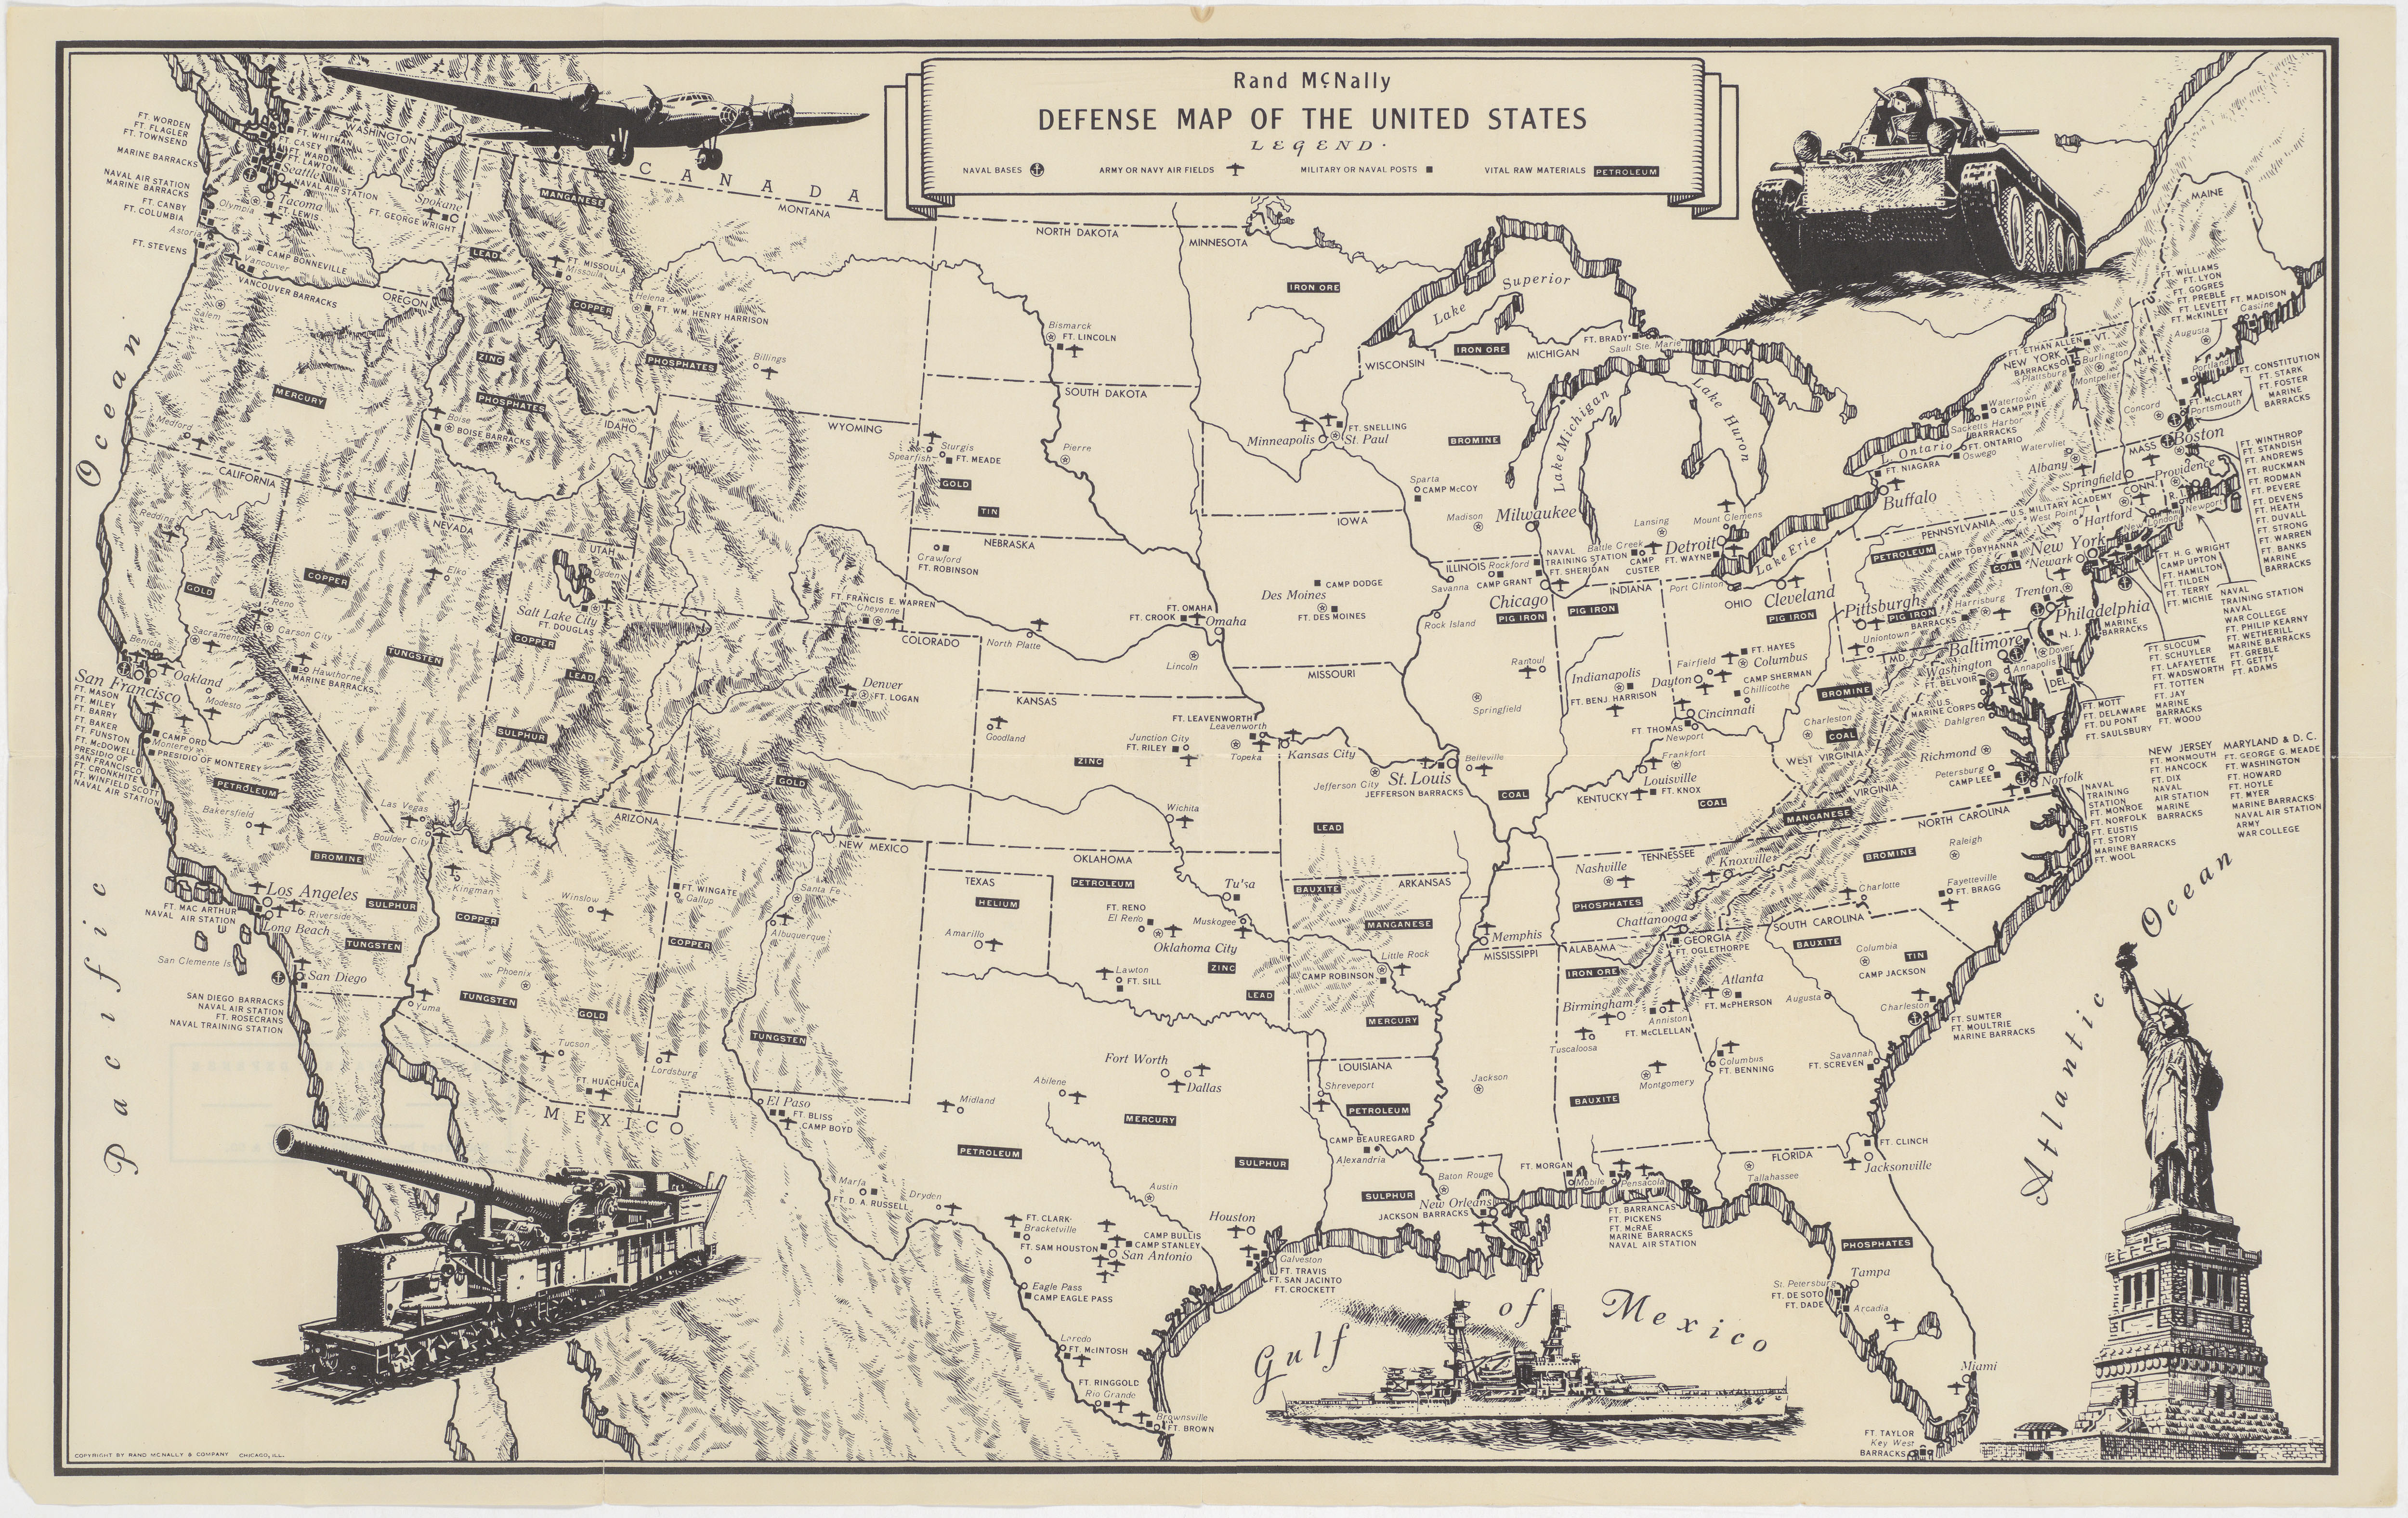 Details about Fascinating World War II era map of U.S. military bases and  vital raw materials.